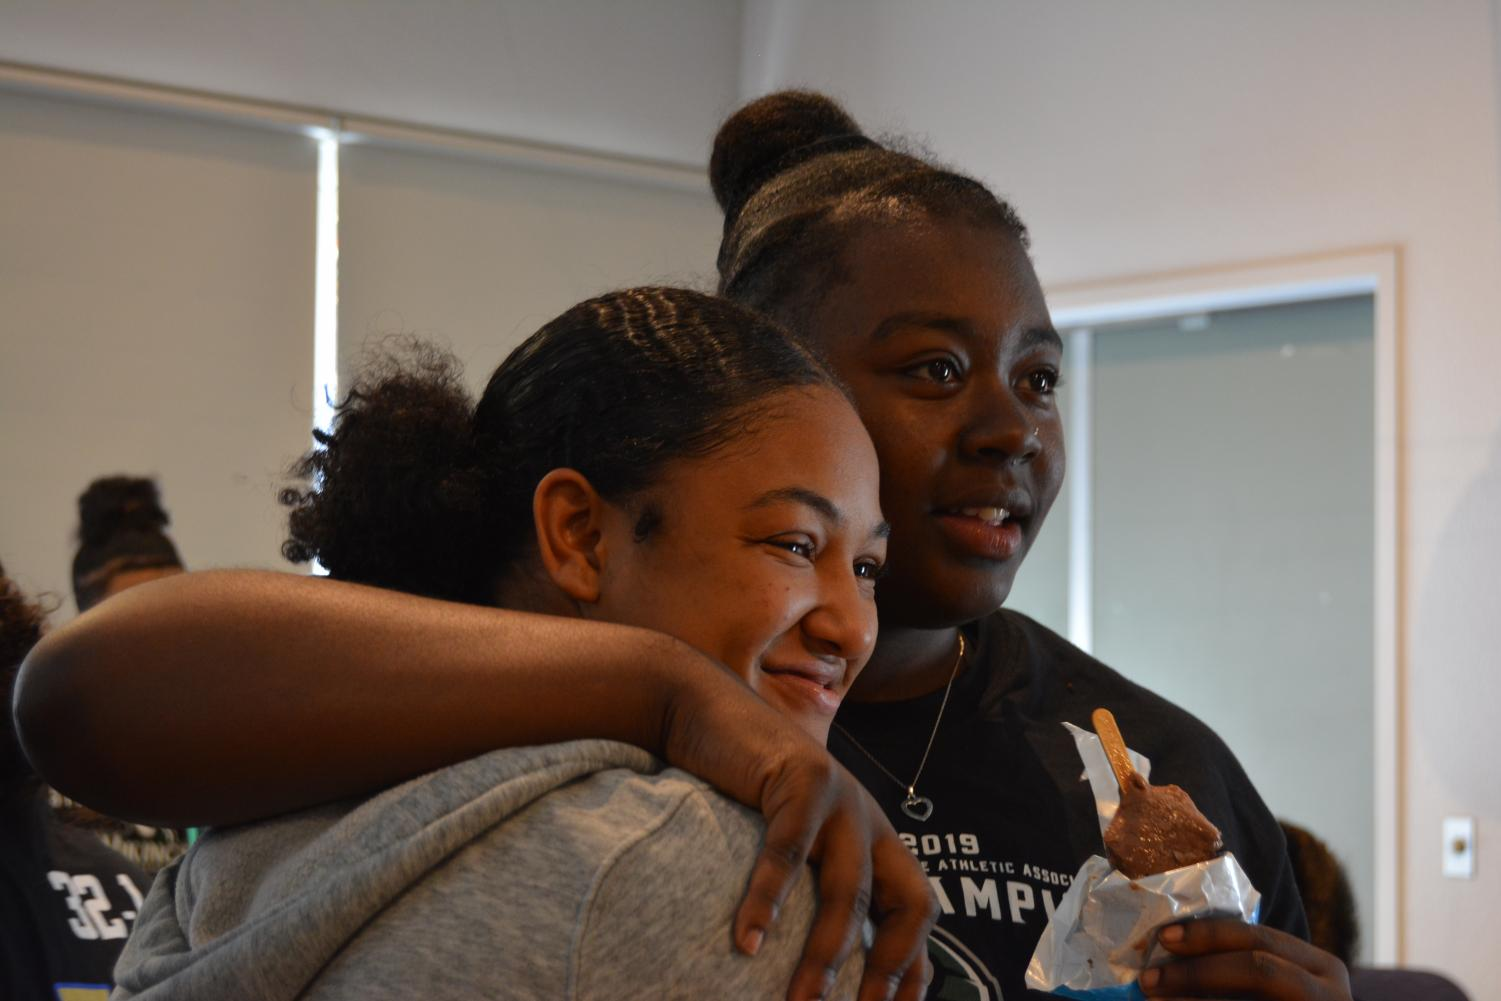 Sierra Smith (left) and Zahria Hendrix (right) celebrate their state championship victory with members of DVC in the Business/Foreign Language building on April 16, 2019. (Samantha Laurey/Inquirer)